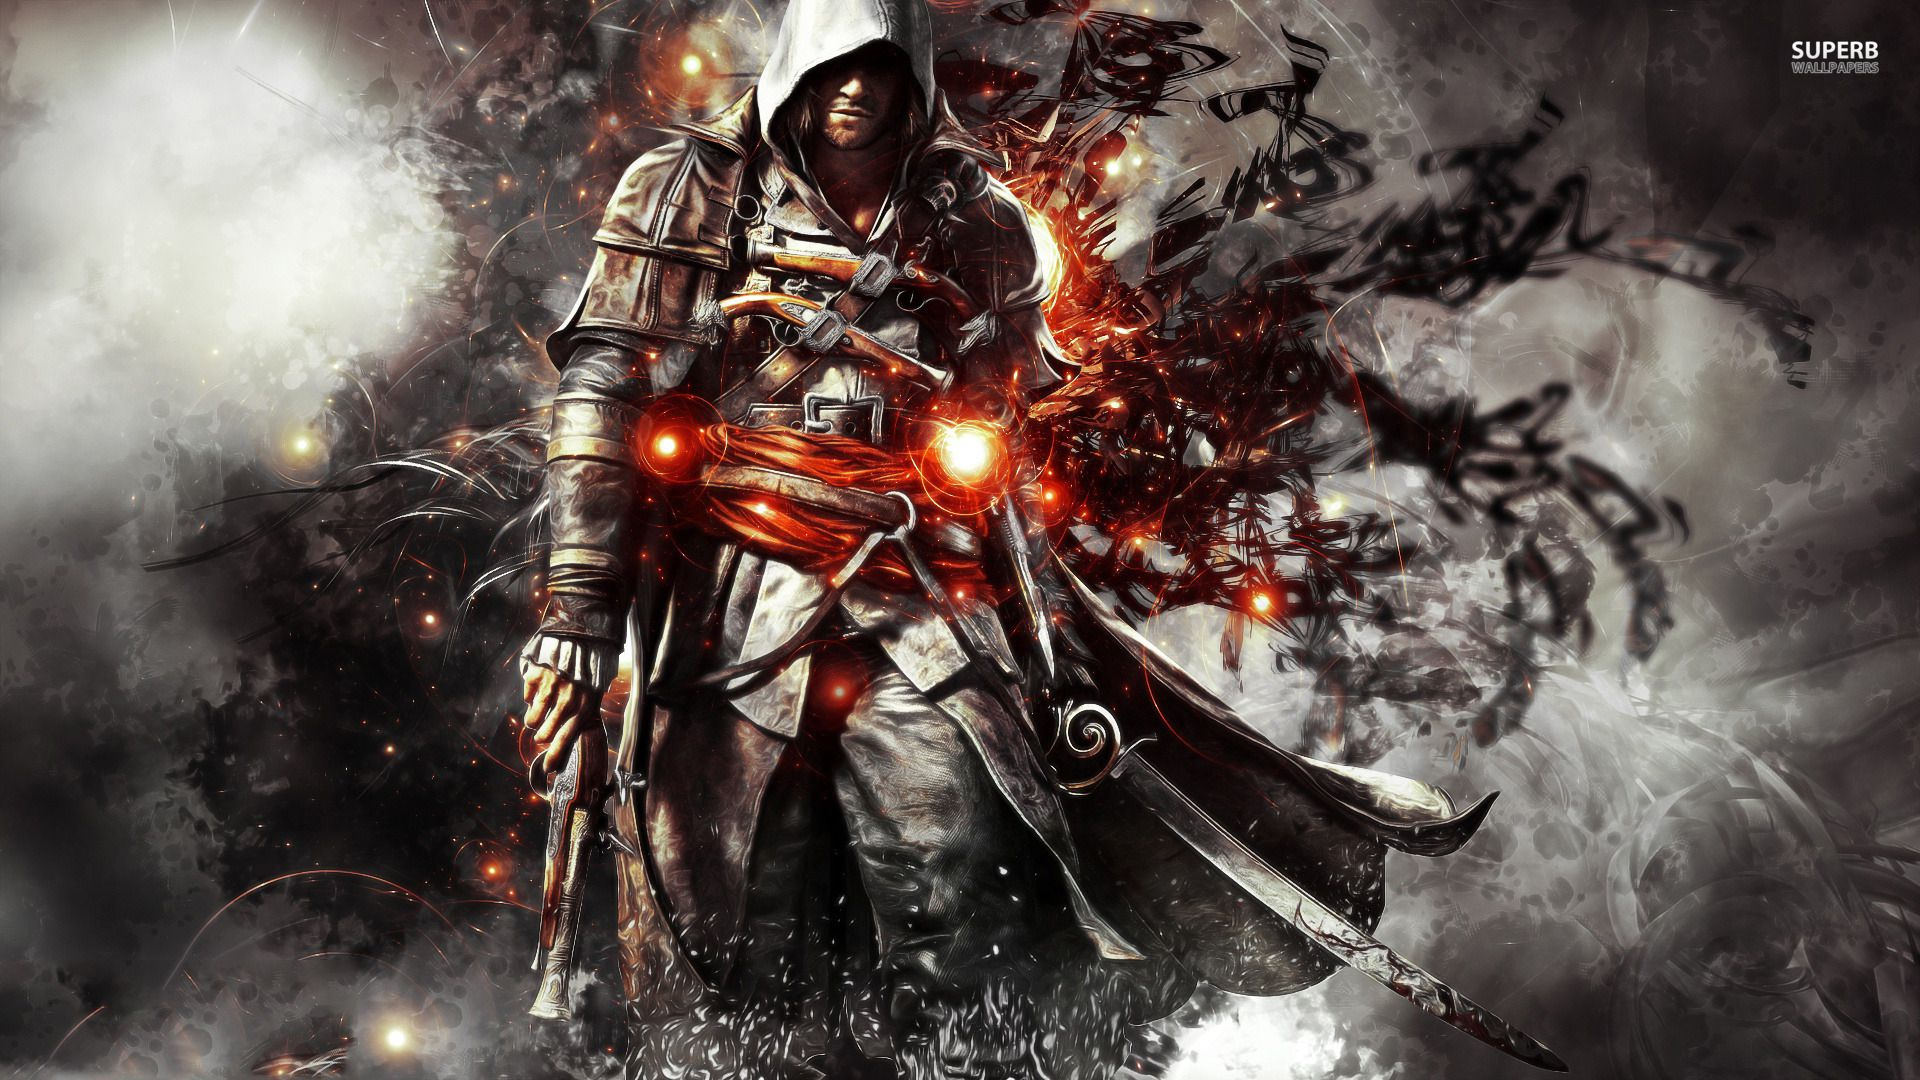 Collection of Assassin Creed Wallpaper on HDWallpapers